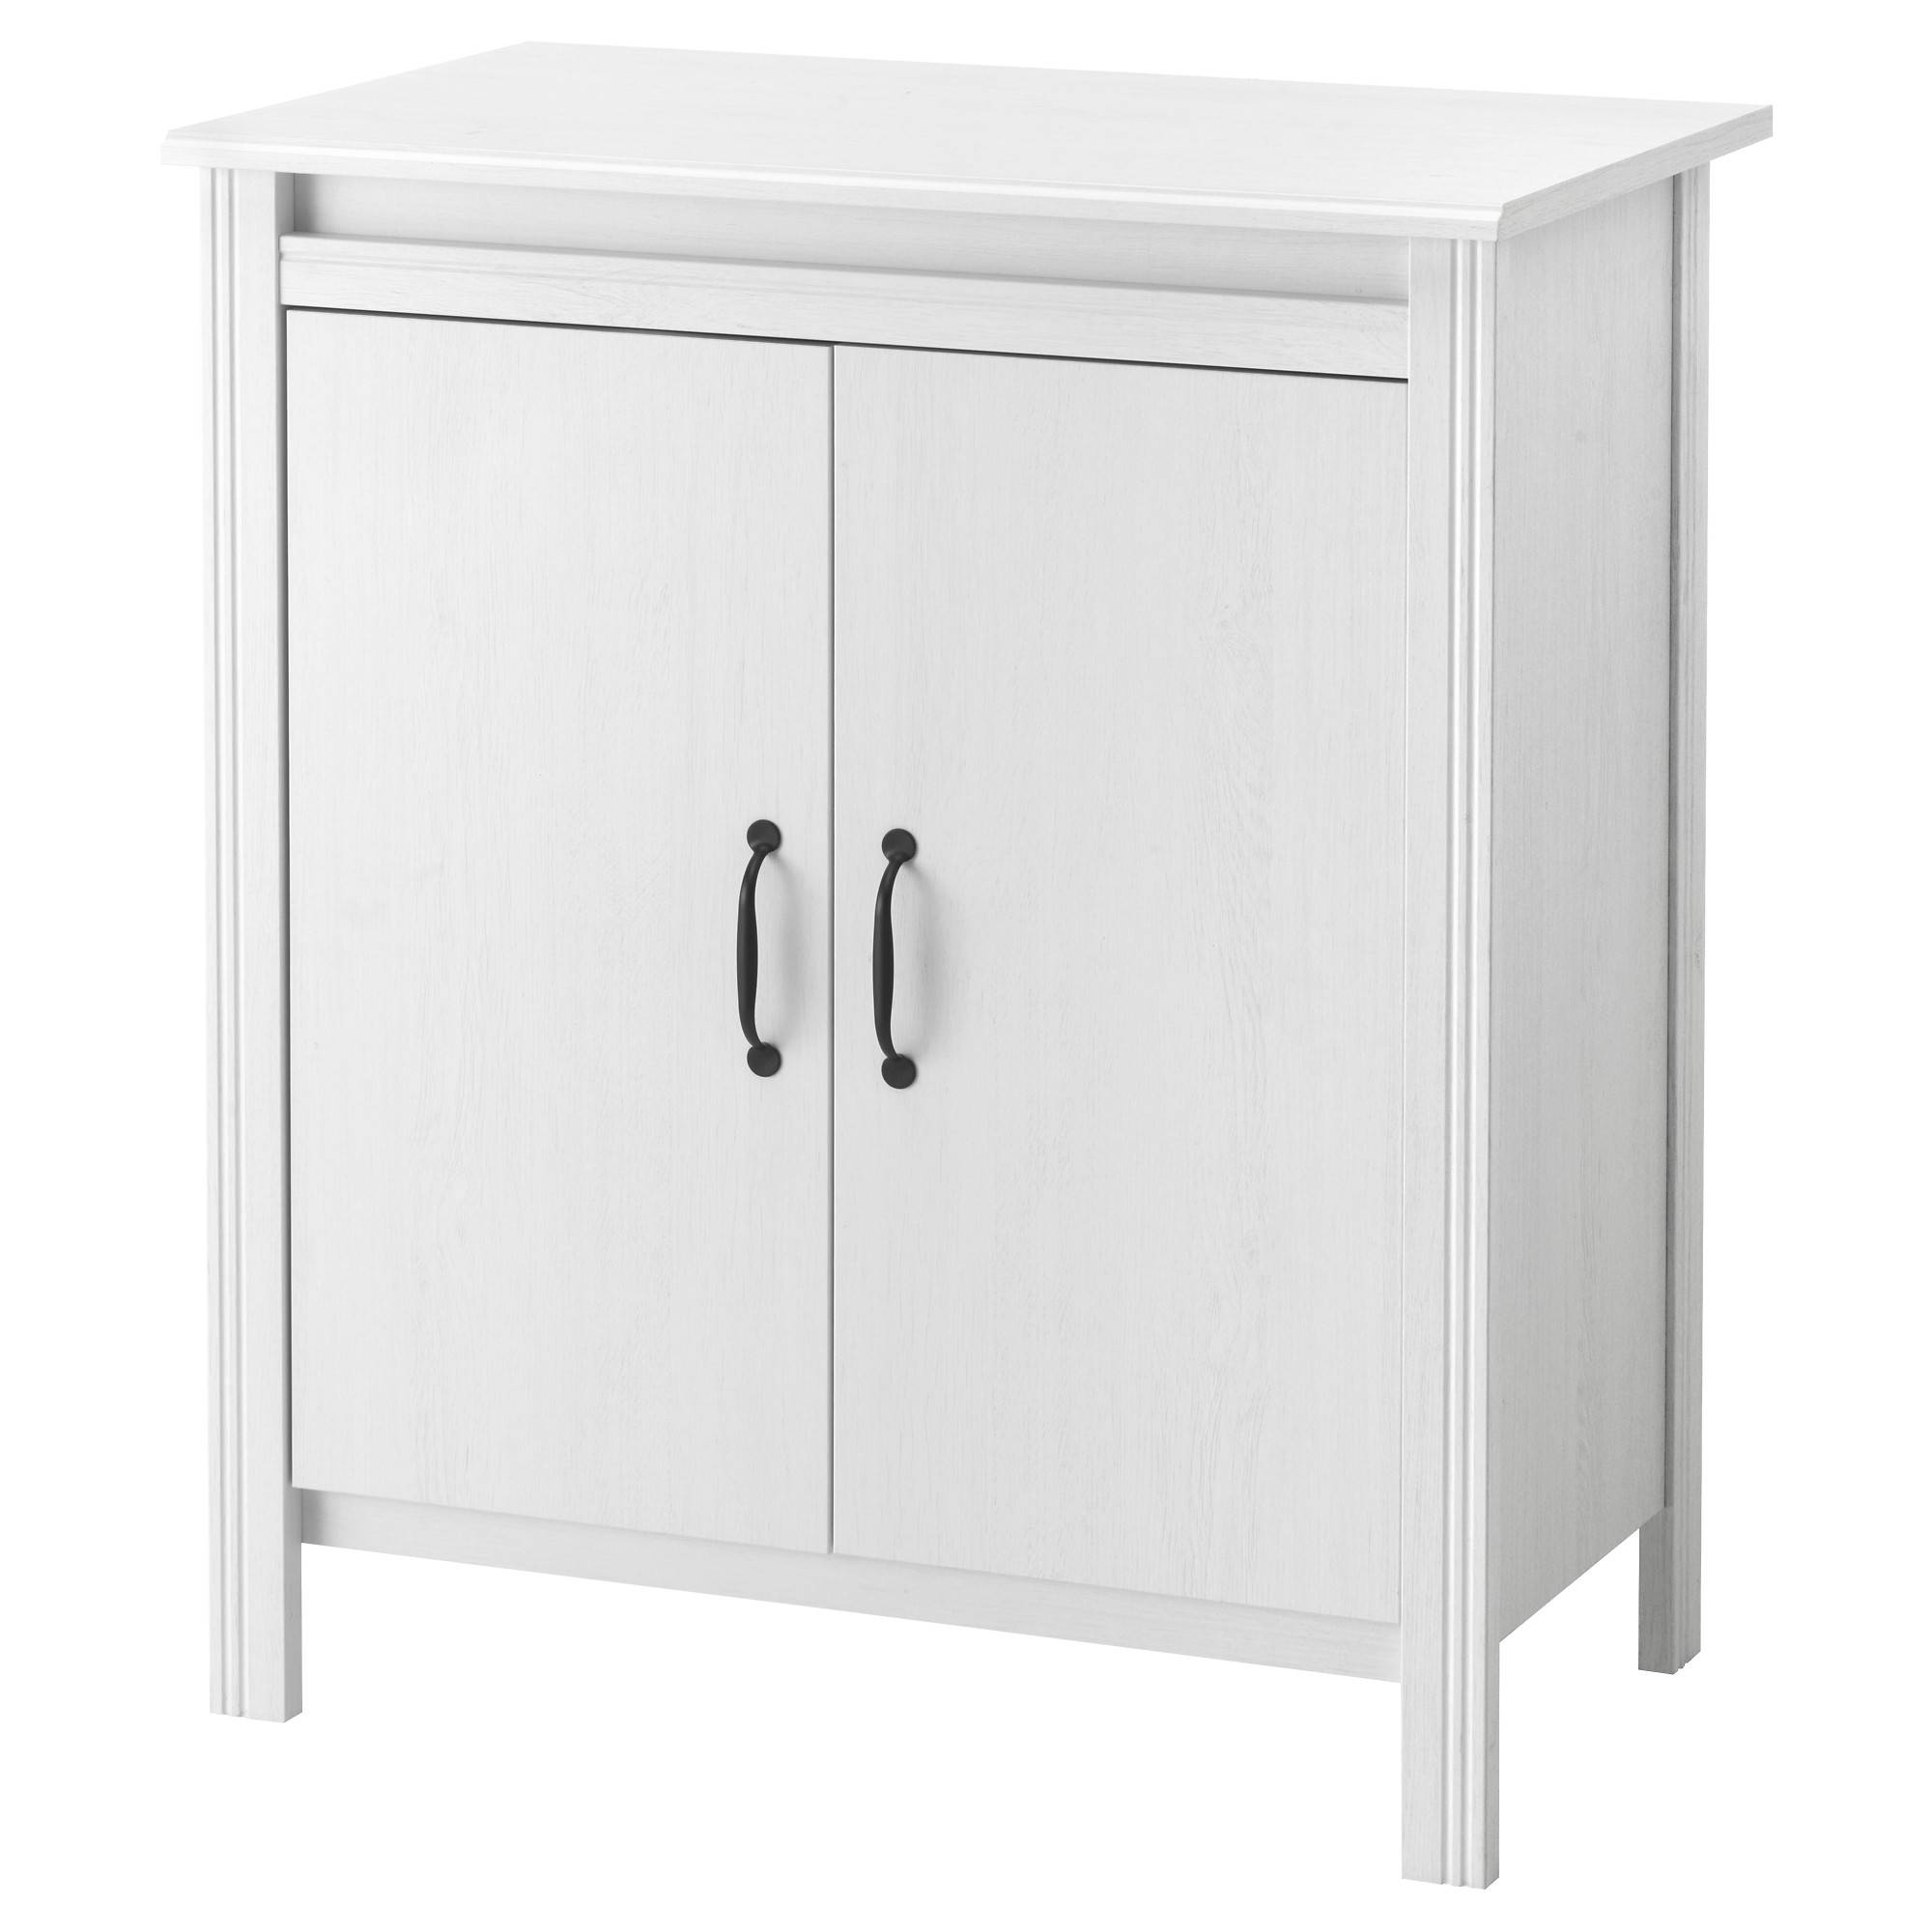 Storage Cabinets & Storage Cupboards | Ikea In White Sideboard Cabinet (View 18 of 20)